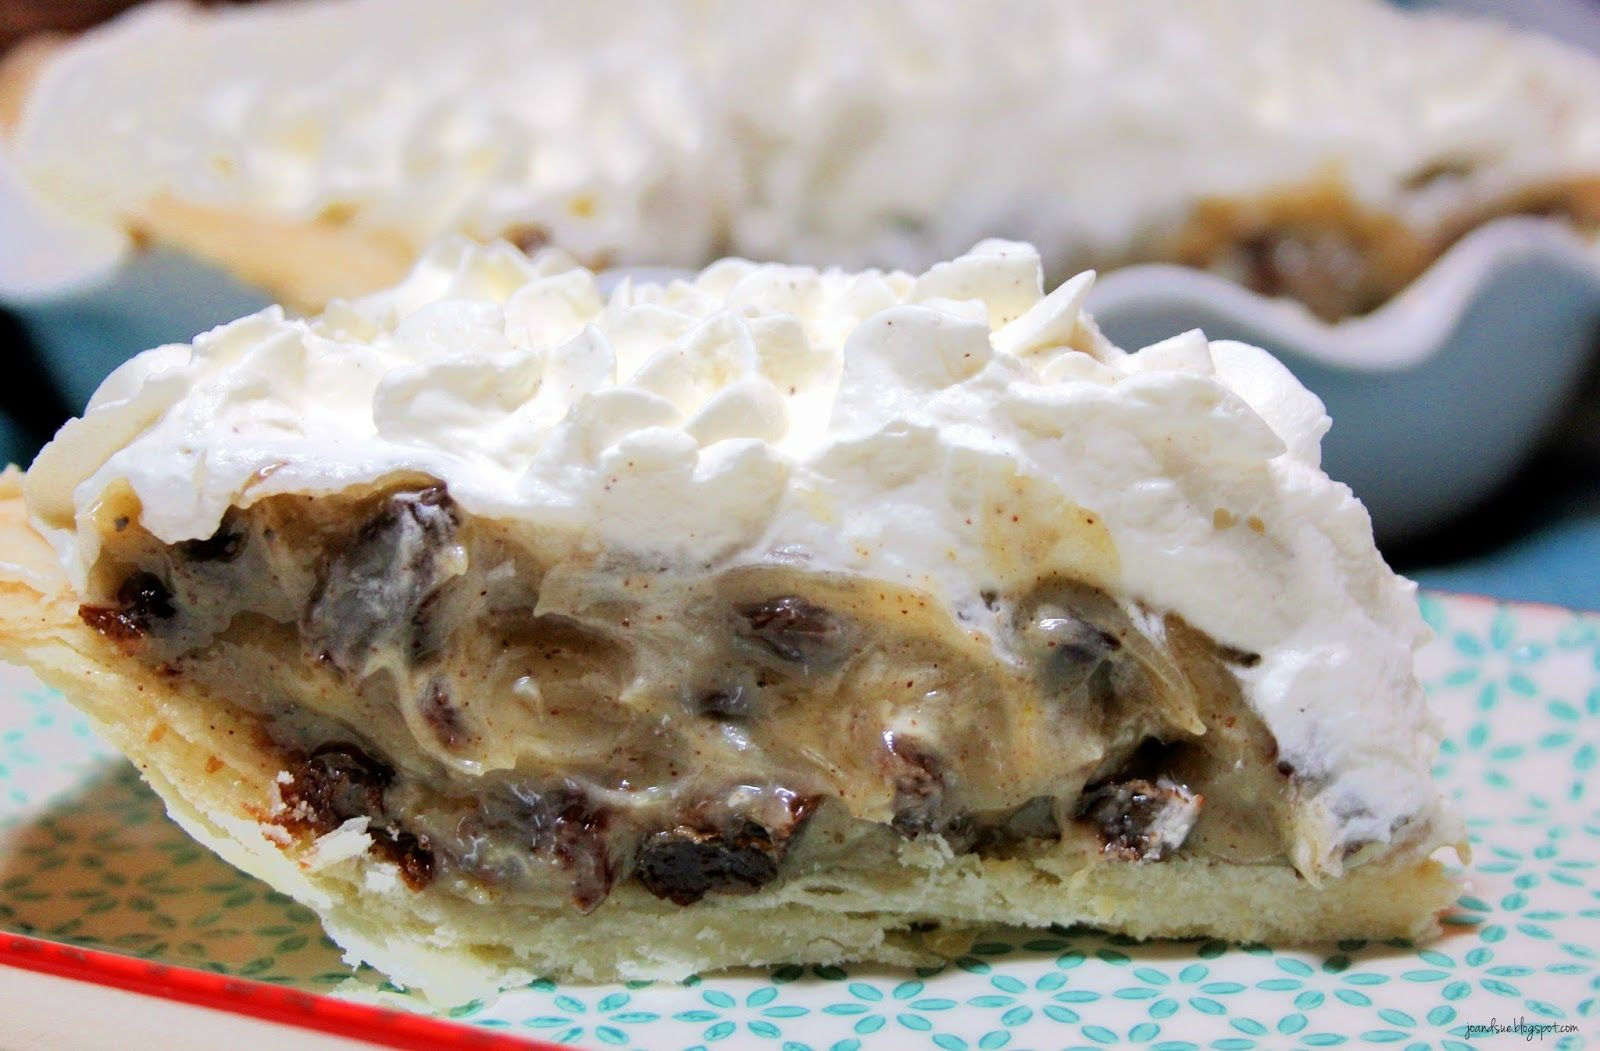 This Is One Of Our Dad S Favorite Pies I Think His First Choice Is Lemon Meringue But This Sour Cream Raisin Pie Raisin Pie Recipe Raisin Pie Filling Recipe